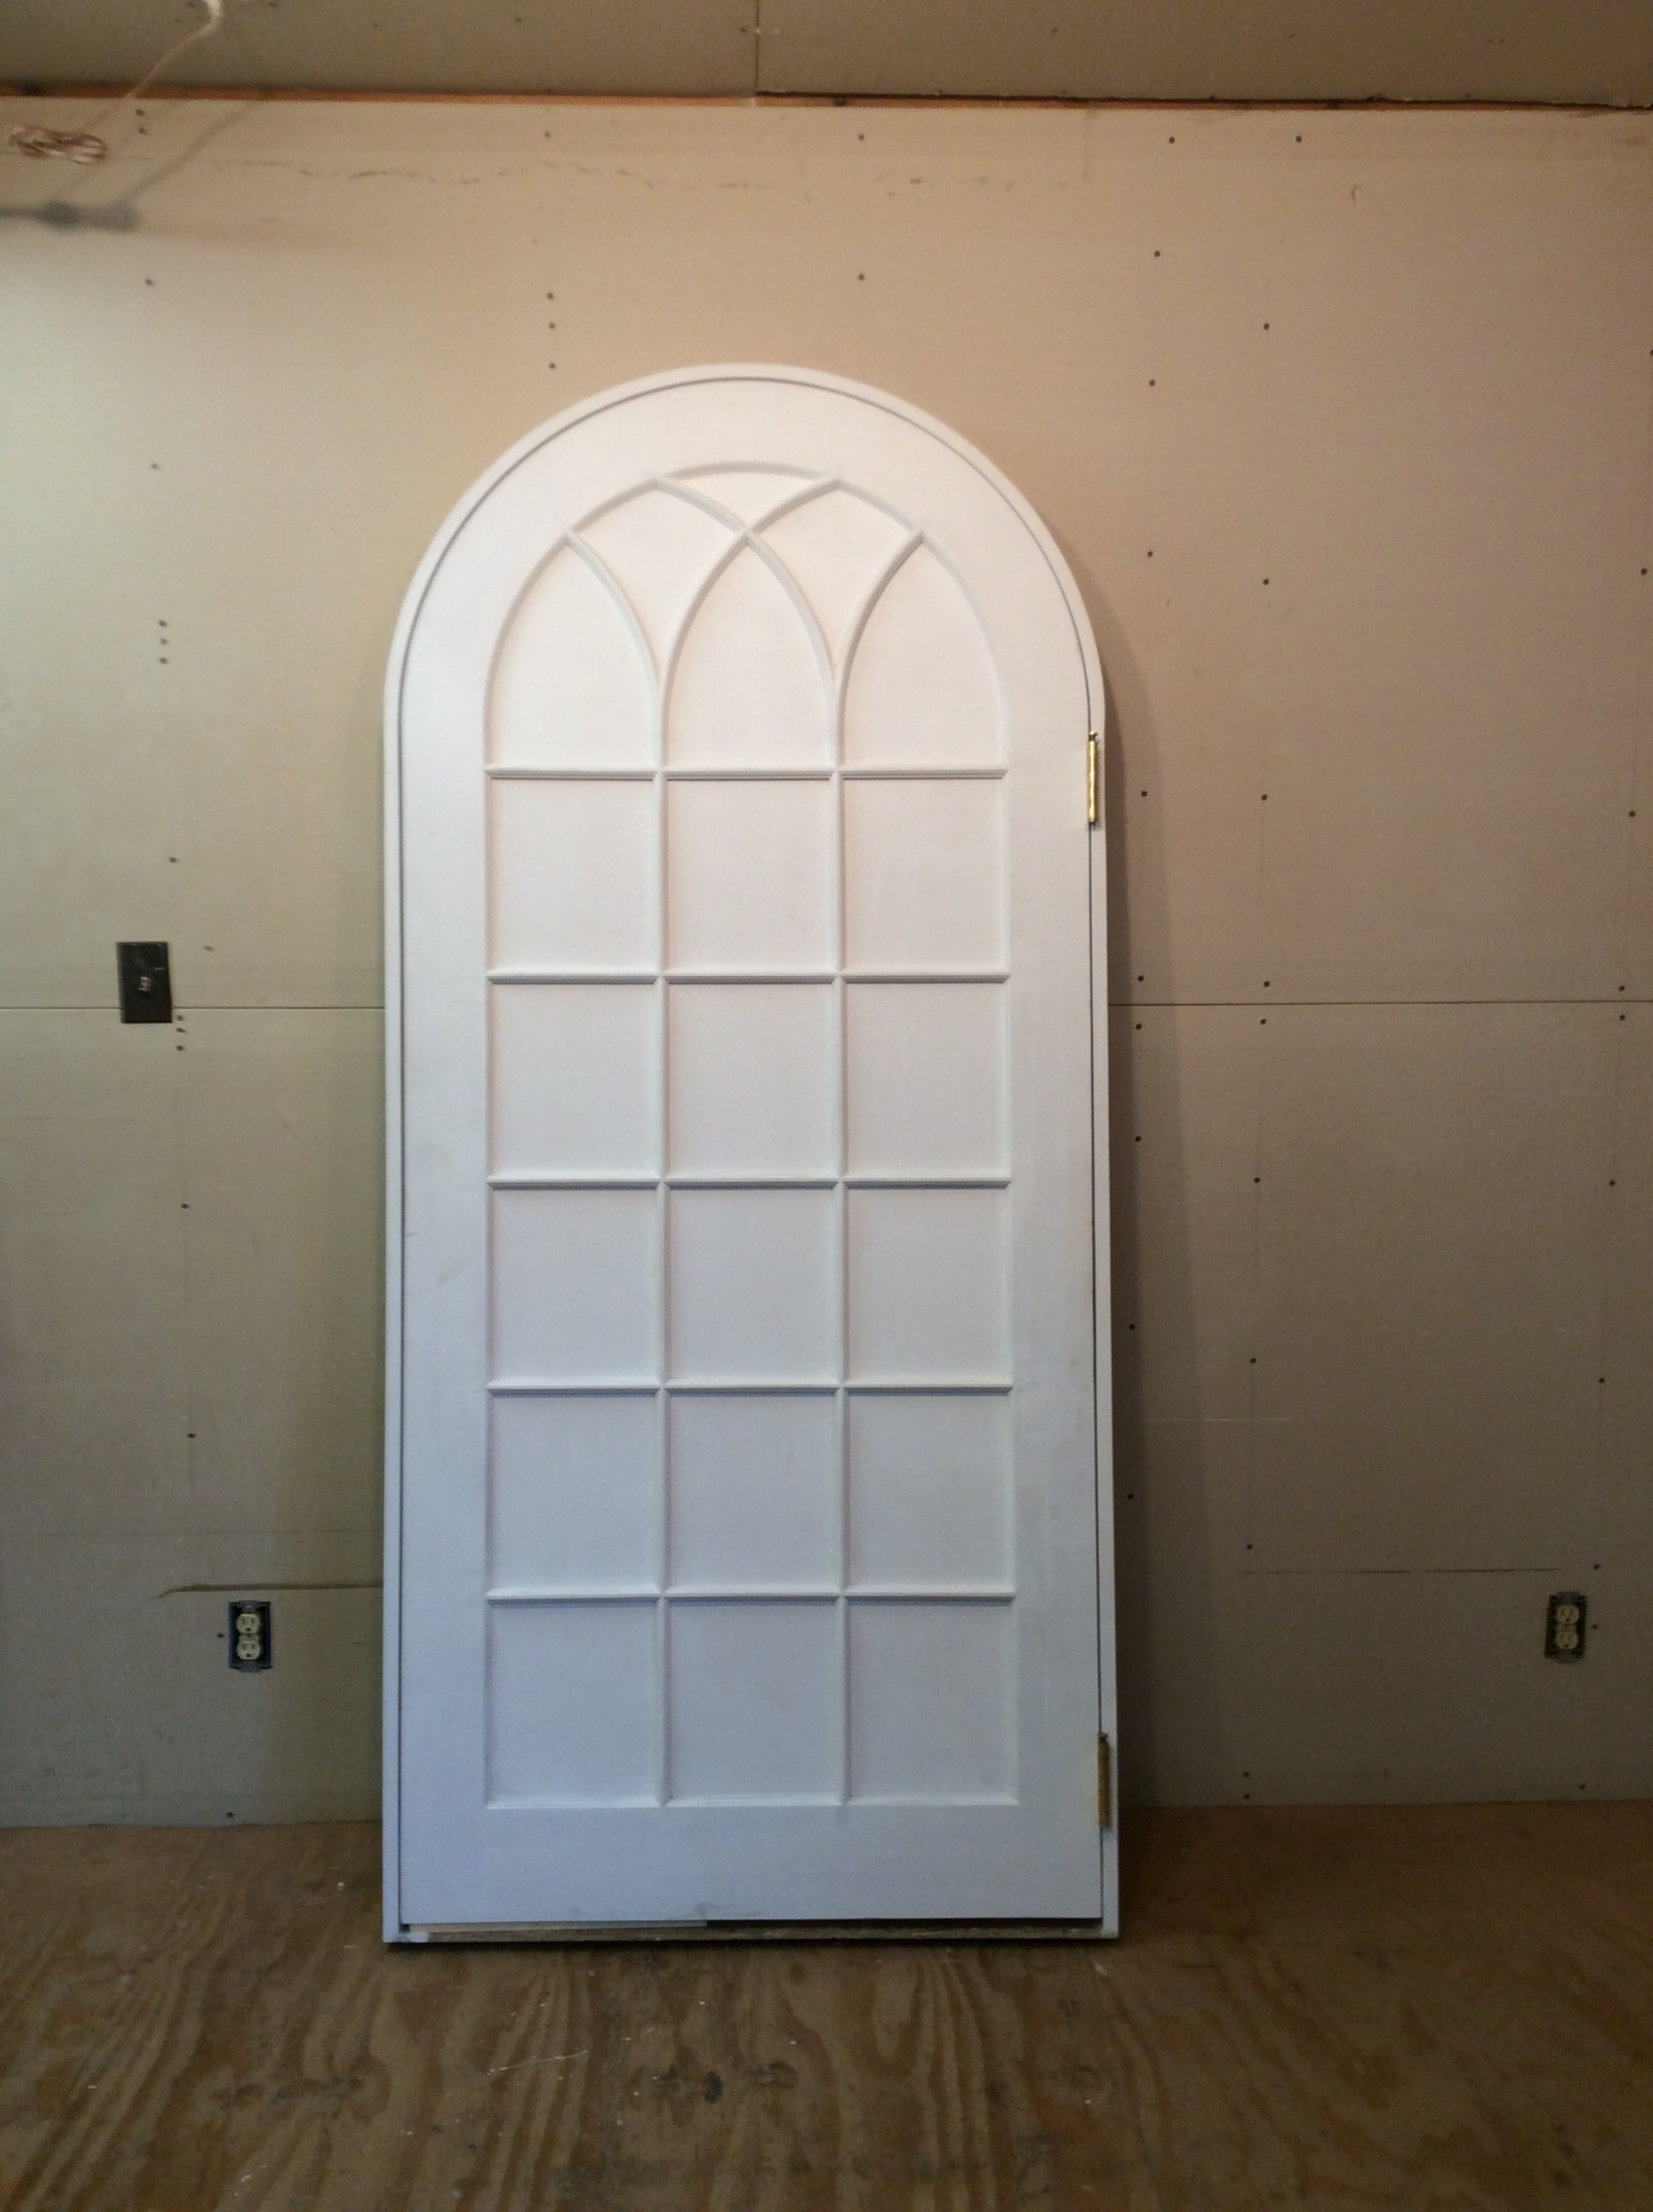 2591 #443724 Wood Custom Interior Arched Top With Gothic Arched Mullions Door Unit  picture/photo Arch Top Doors 43391936